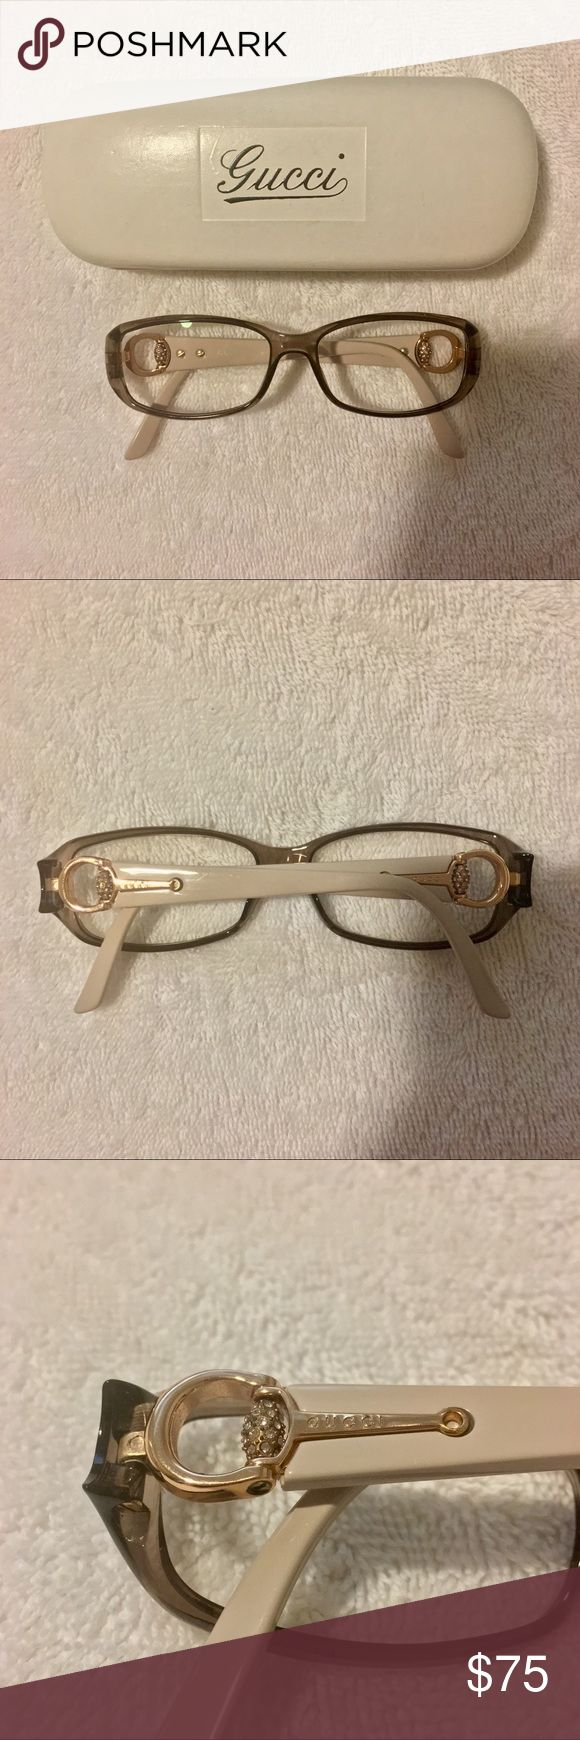 Gucci Horsebit Eyeglass Frame Lilac/Taupe translucent color on front of frame. Light nude/pink on side arms. Classic gold horsebit accent on each arm with crystal accents. Classic 'GUCCI' lettering on each arm. Like New. Comes with case. 100% authentic. Currently with prescription lens - Can be easily removed or replaced. Last photo uploaded to show size on face Gucci Accessories Glasses